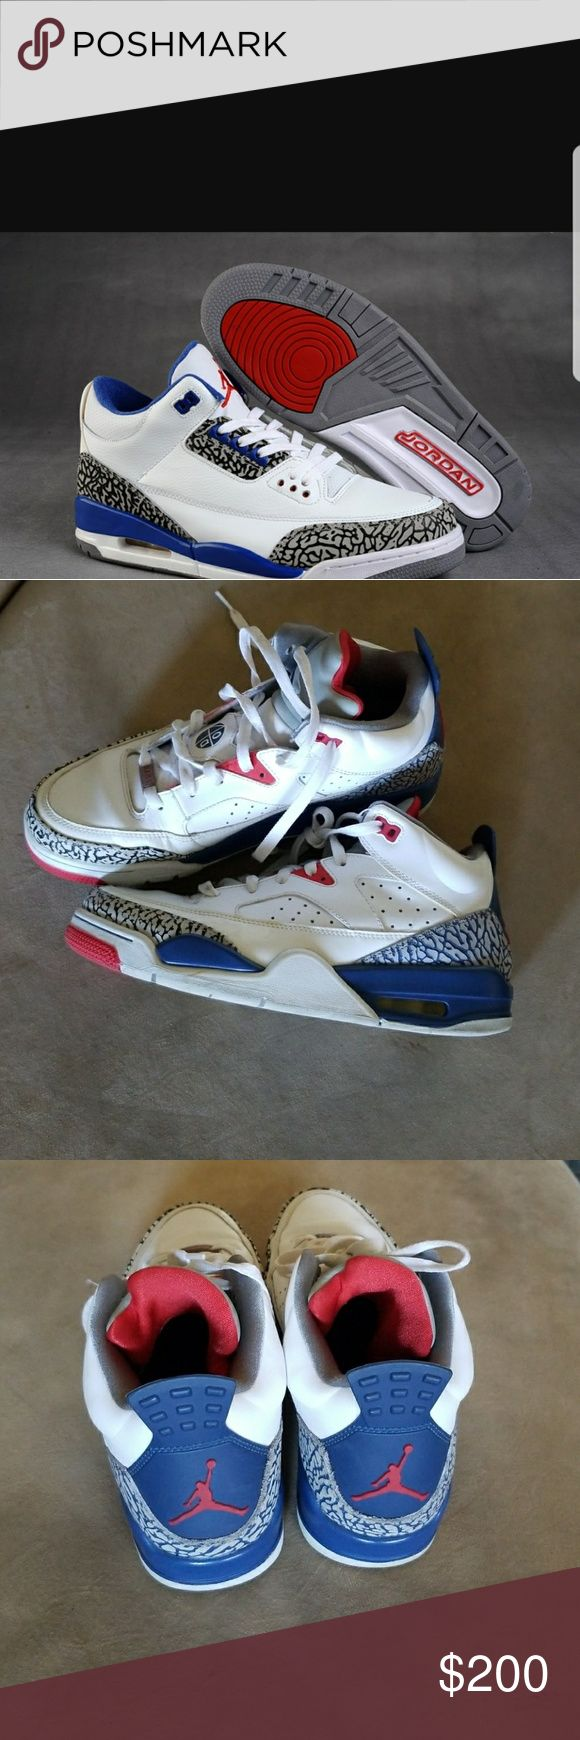 Jordan Retro 3 son of Mars spike lee low blue red 2016 release.. Pre-Owned size 9.5 MEN. Show signs of use.  Good condition. Colors are Blue white and red... Jordan Shoes Athletic Shoes